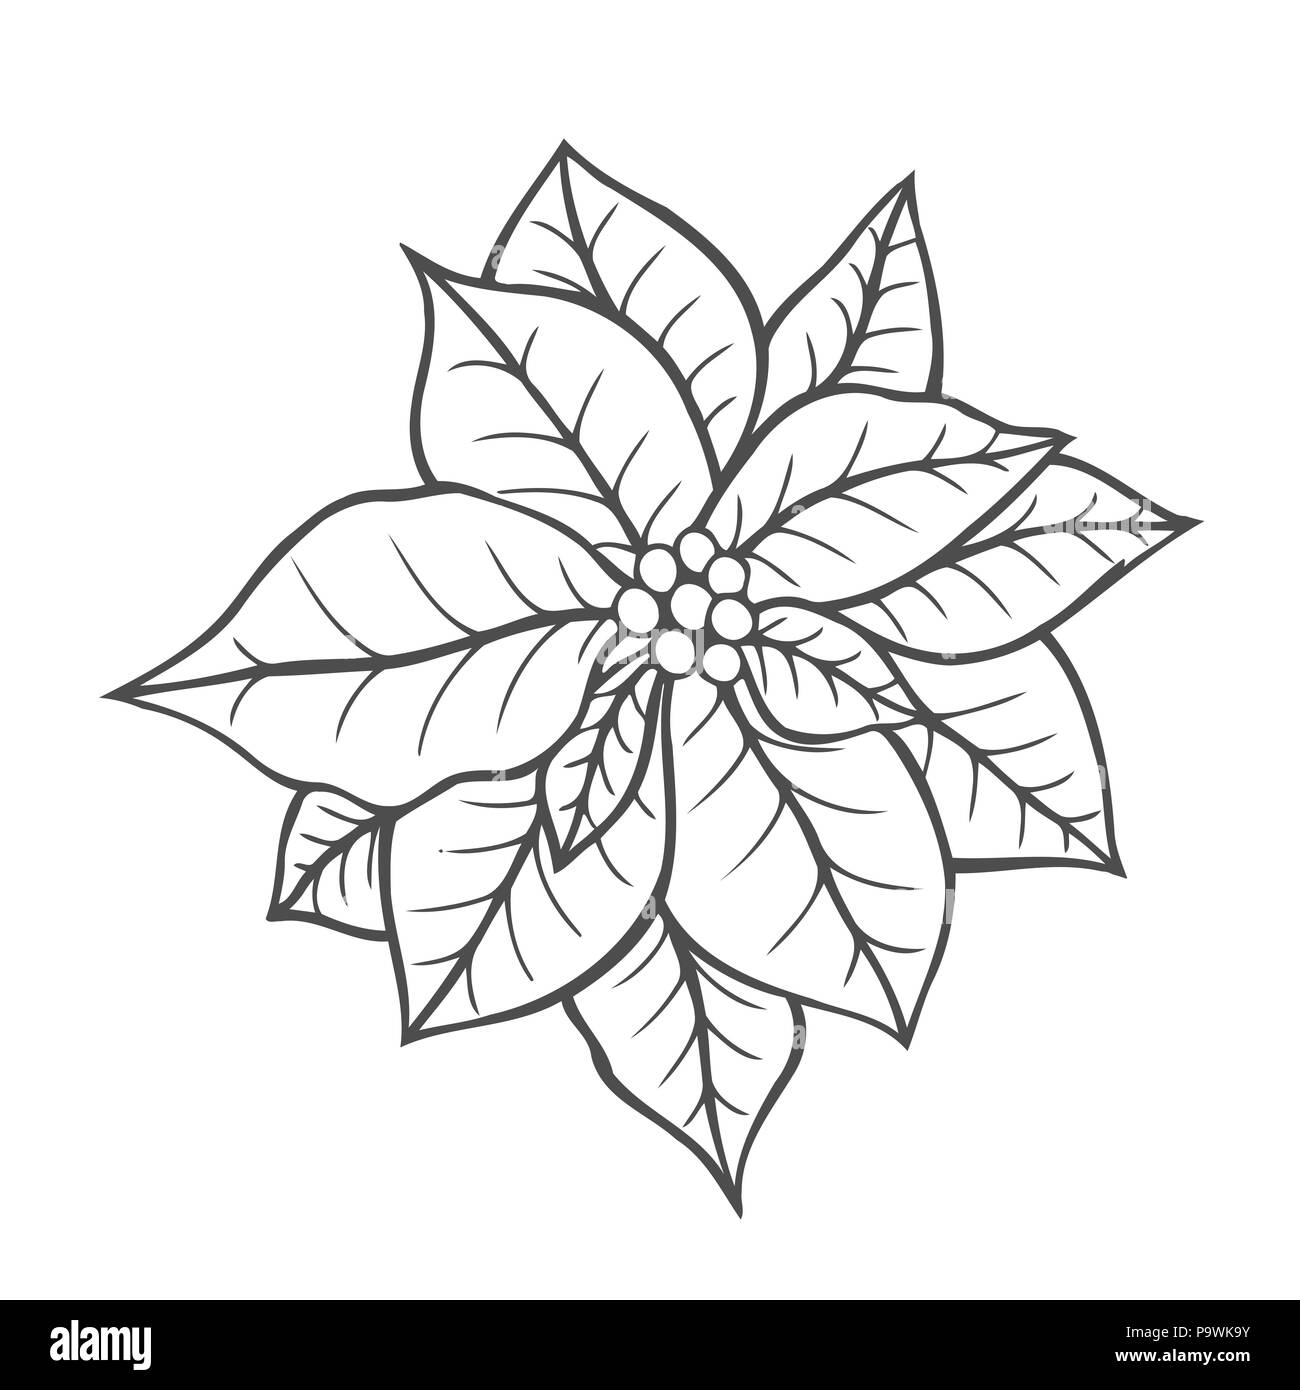 poinsettia isolated christmas flower vintage vector artwork black and white coloring book page for adult hand drawn holiday concept for greeting